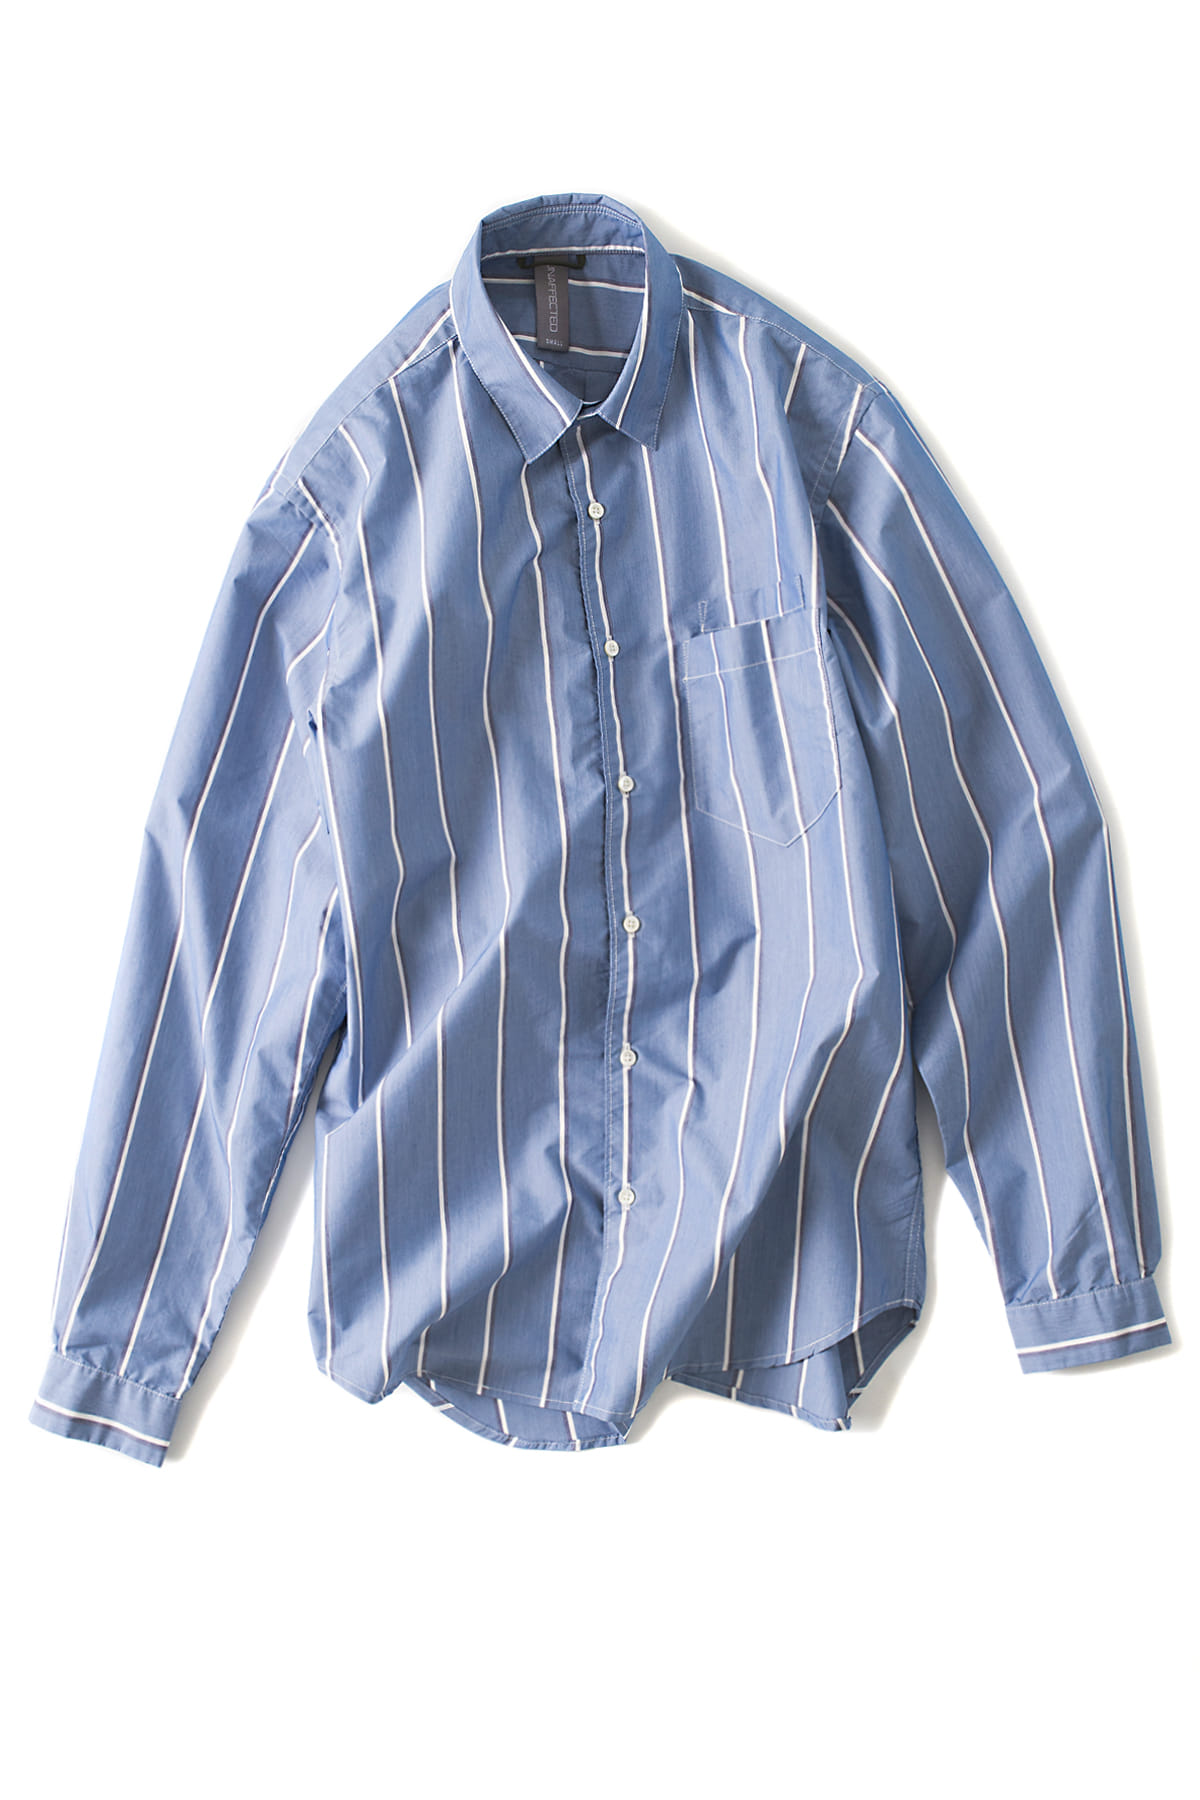 UNAFFECTED : Oversized Basic Shirt (Blue Striped)